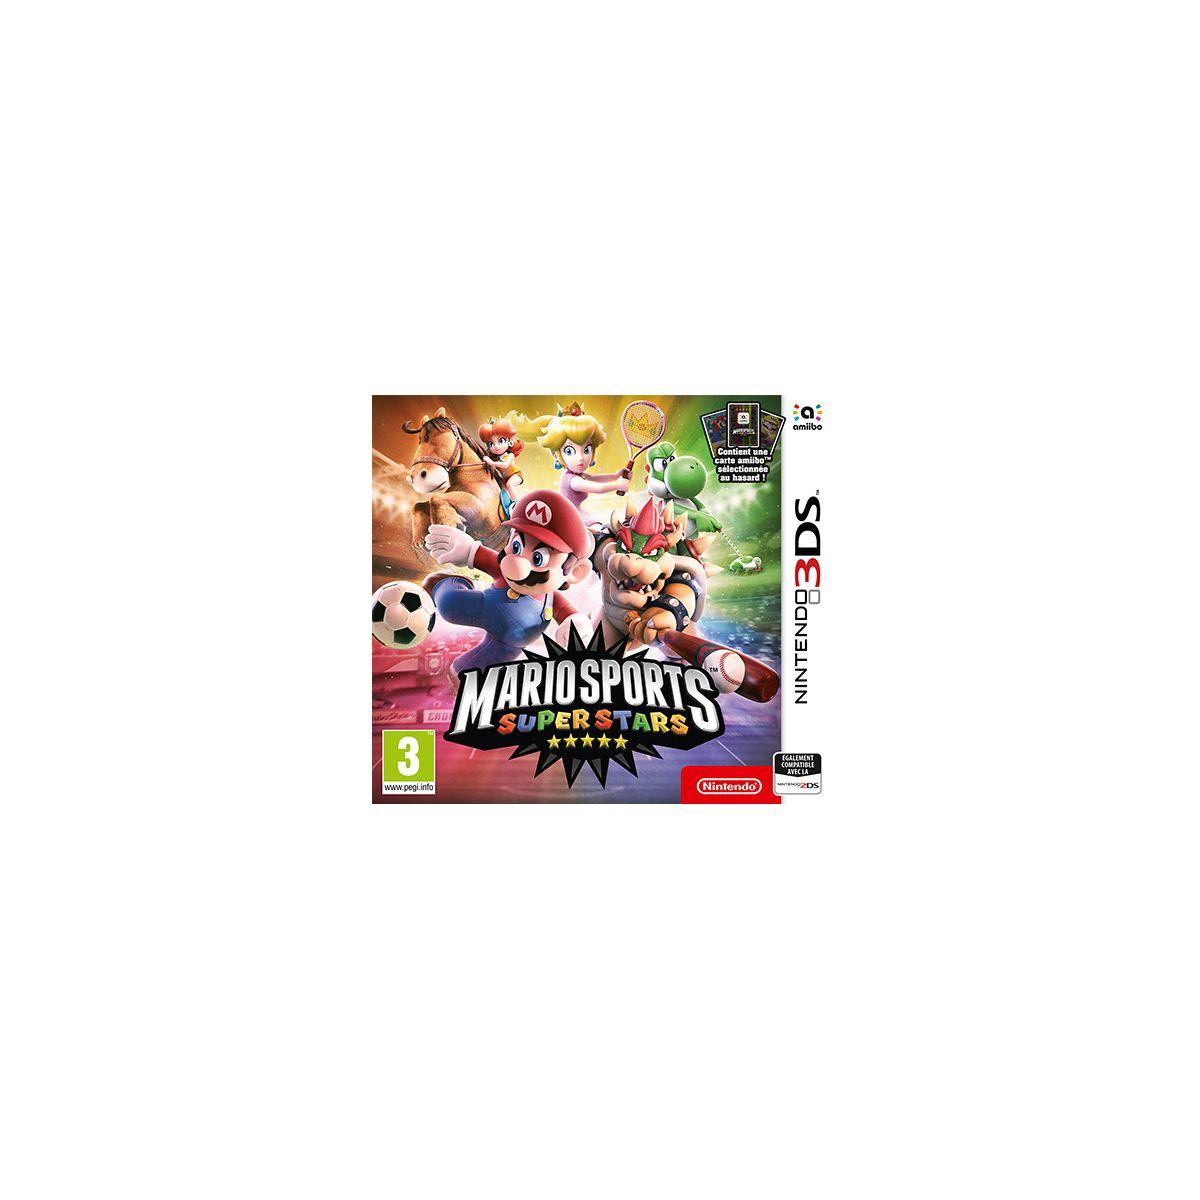 Jeu 3ds nintendo mario sports superstars - 2% de remise immédiate avec le code : cool2 (photo)